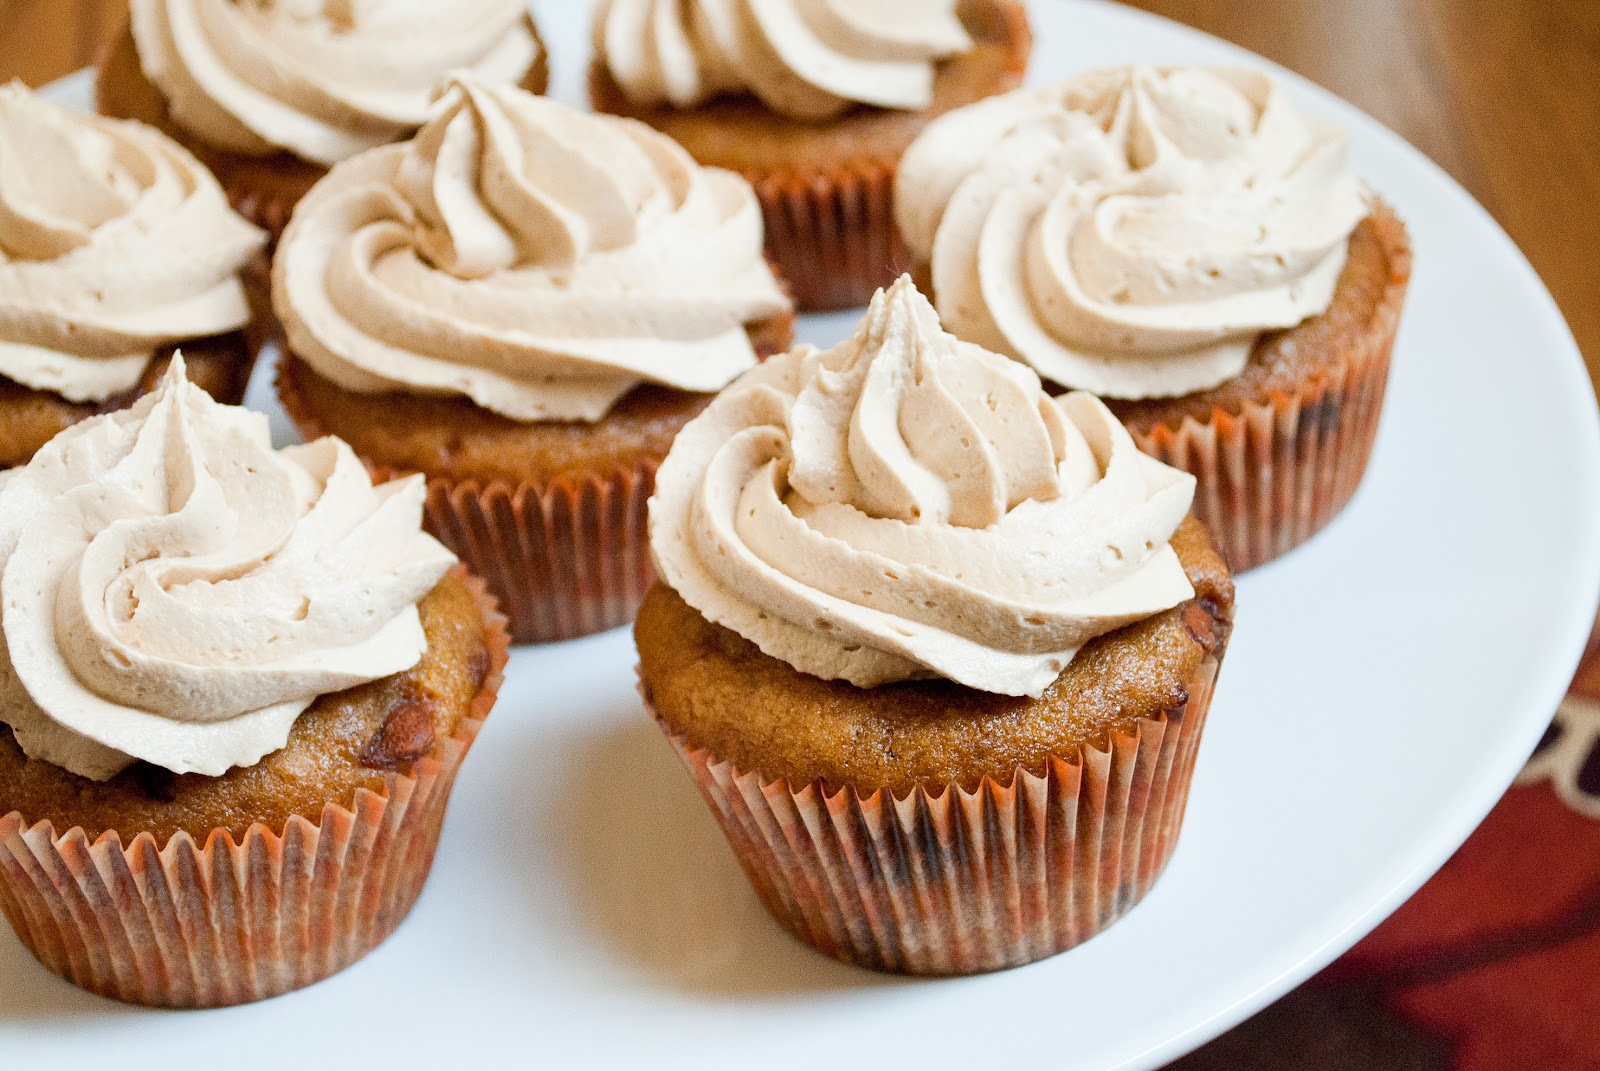 Ryan Bakes: Pumpkin Cinnamon Chip Cupcakes with Biscoff Buttercream